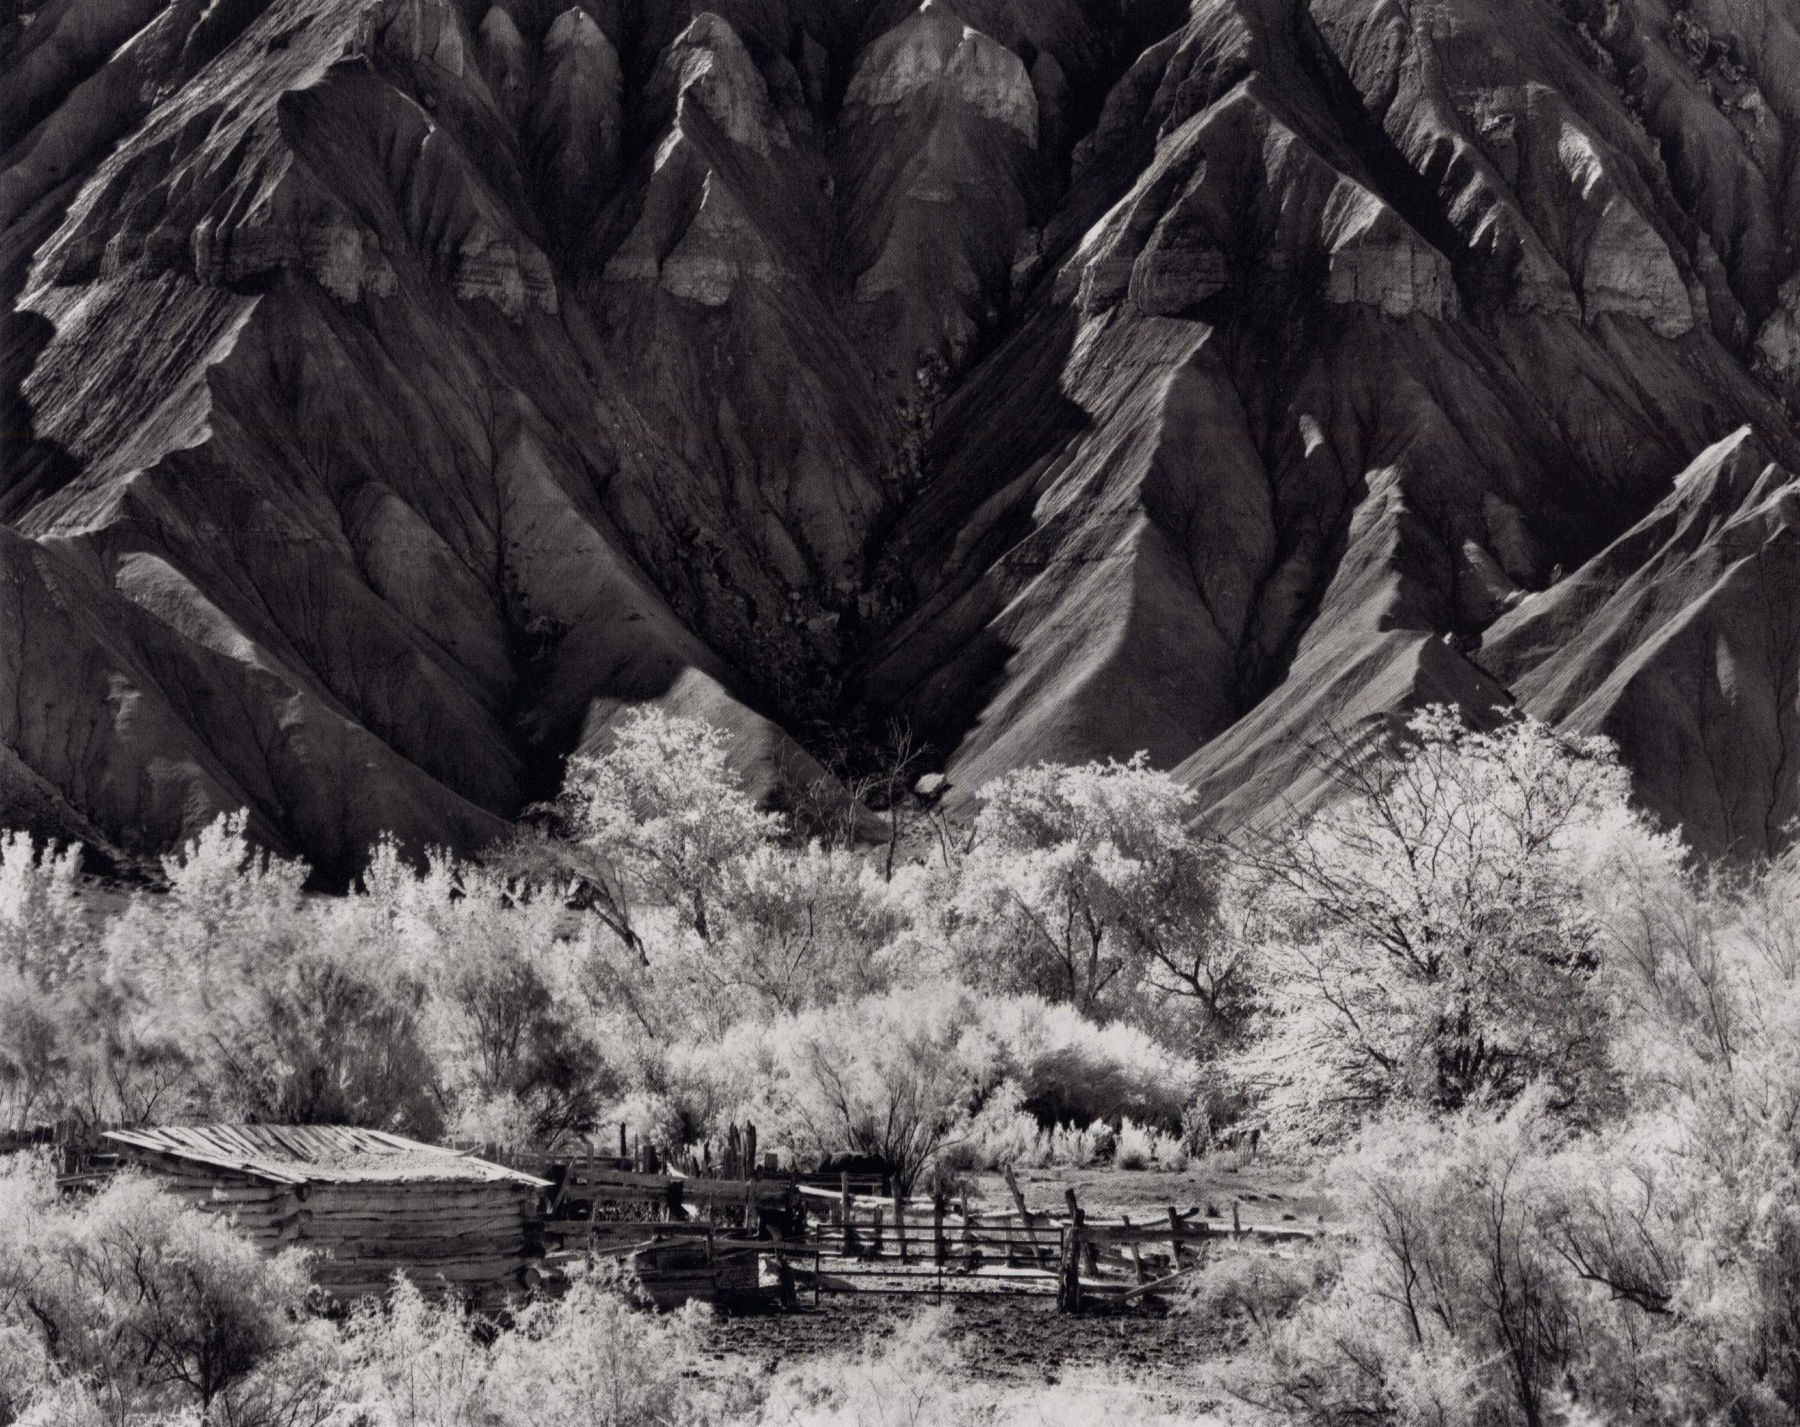 Corral and Cainville Buttes, 2001, 22 x 28 Inches, Silver Gelatin Photograph